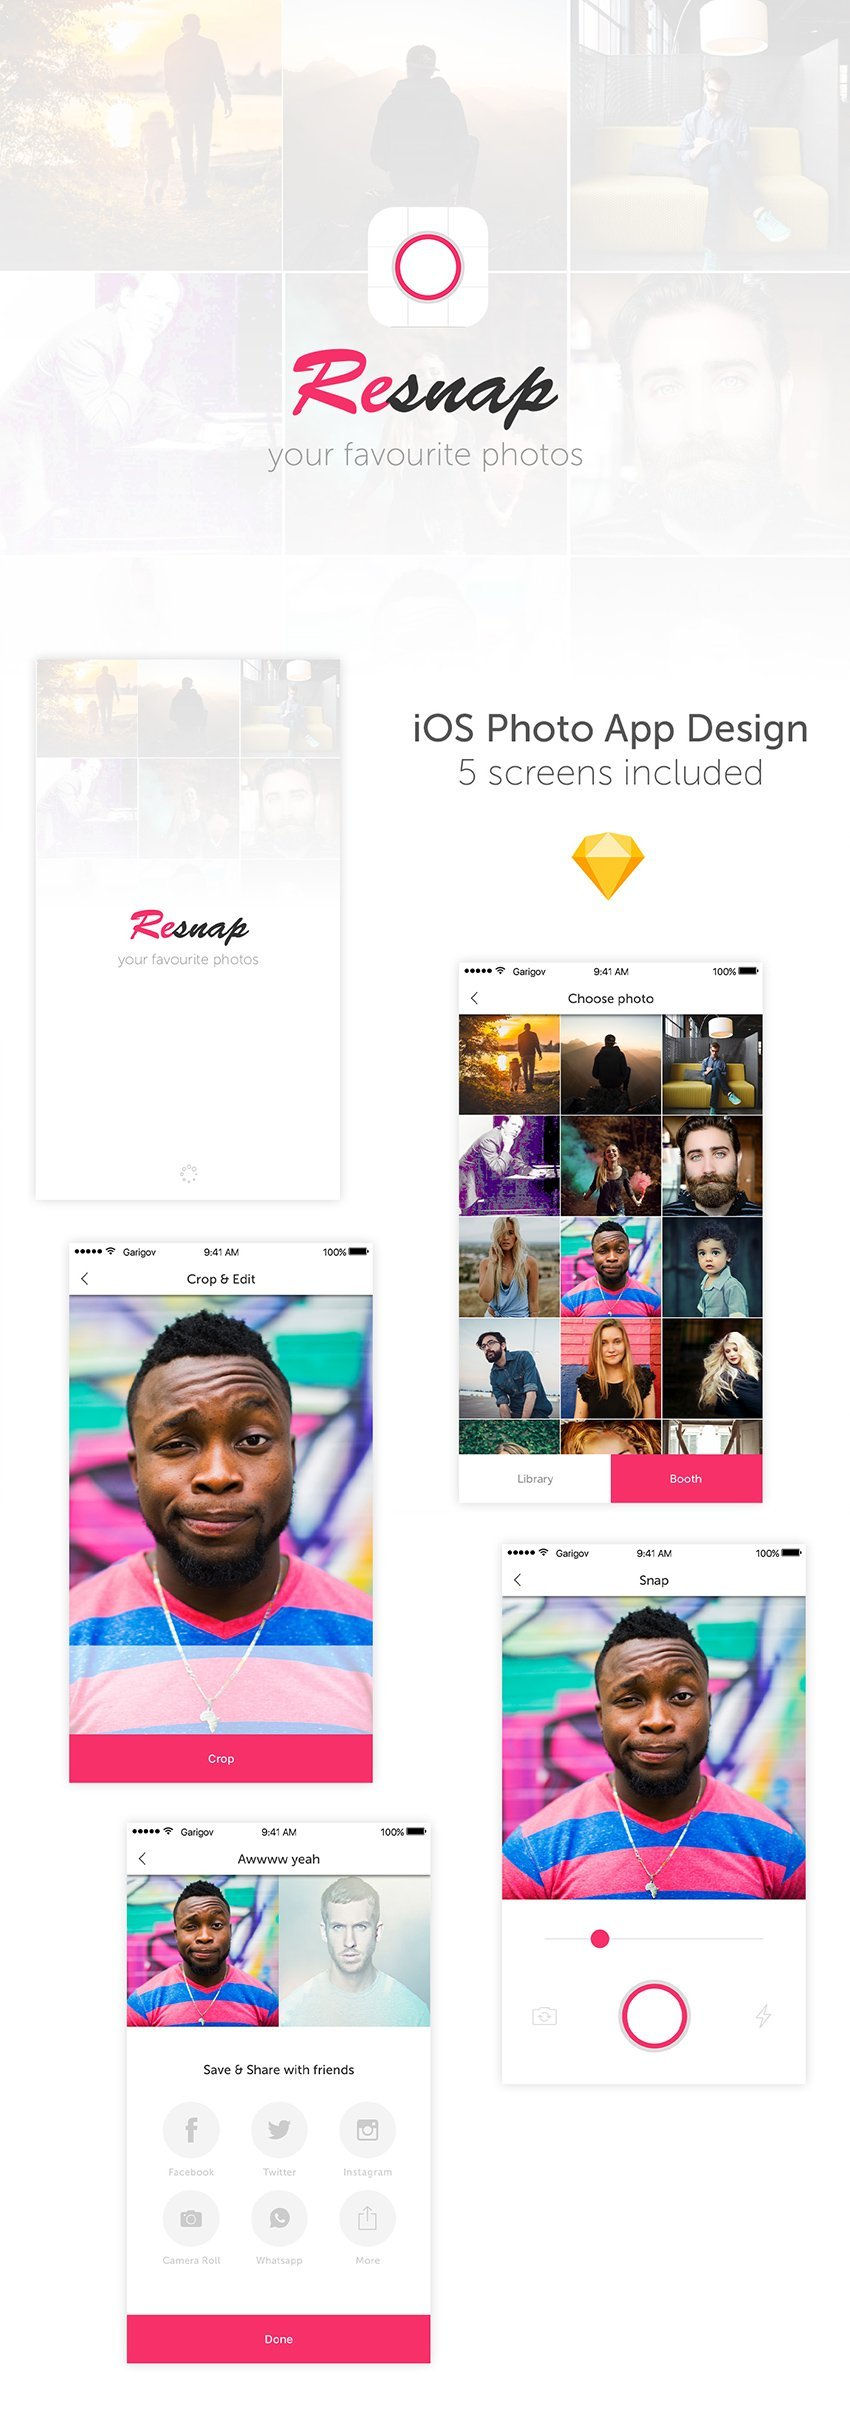 Resnap Photo Editor App Design - Sketch app